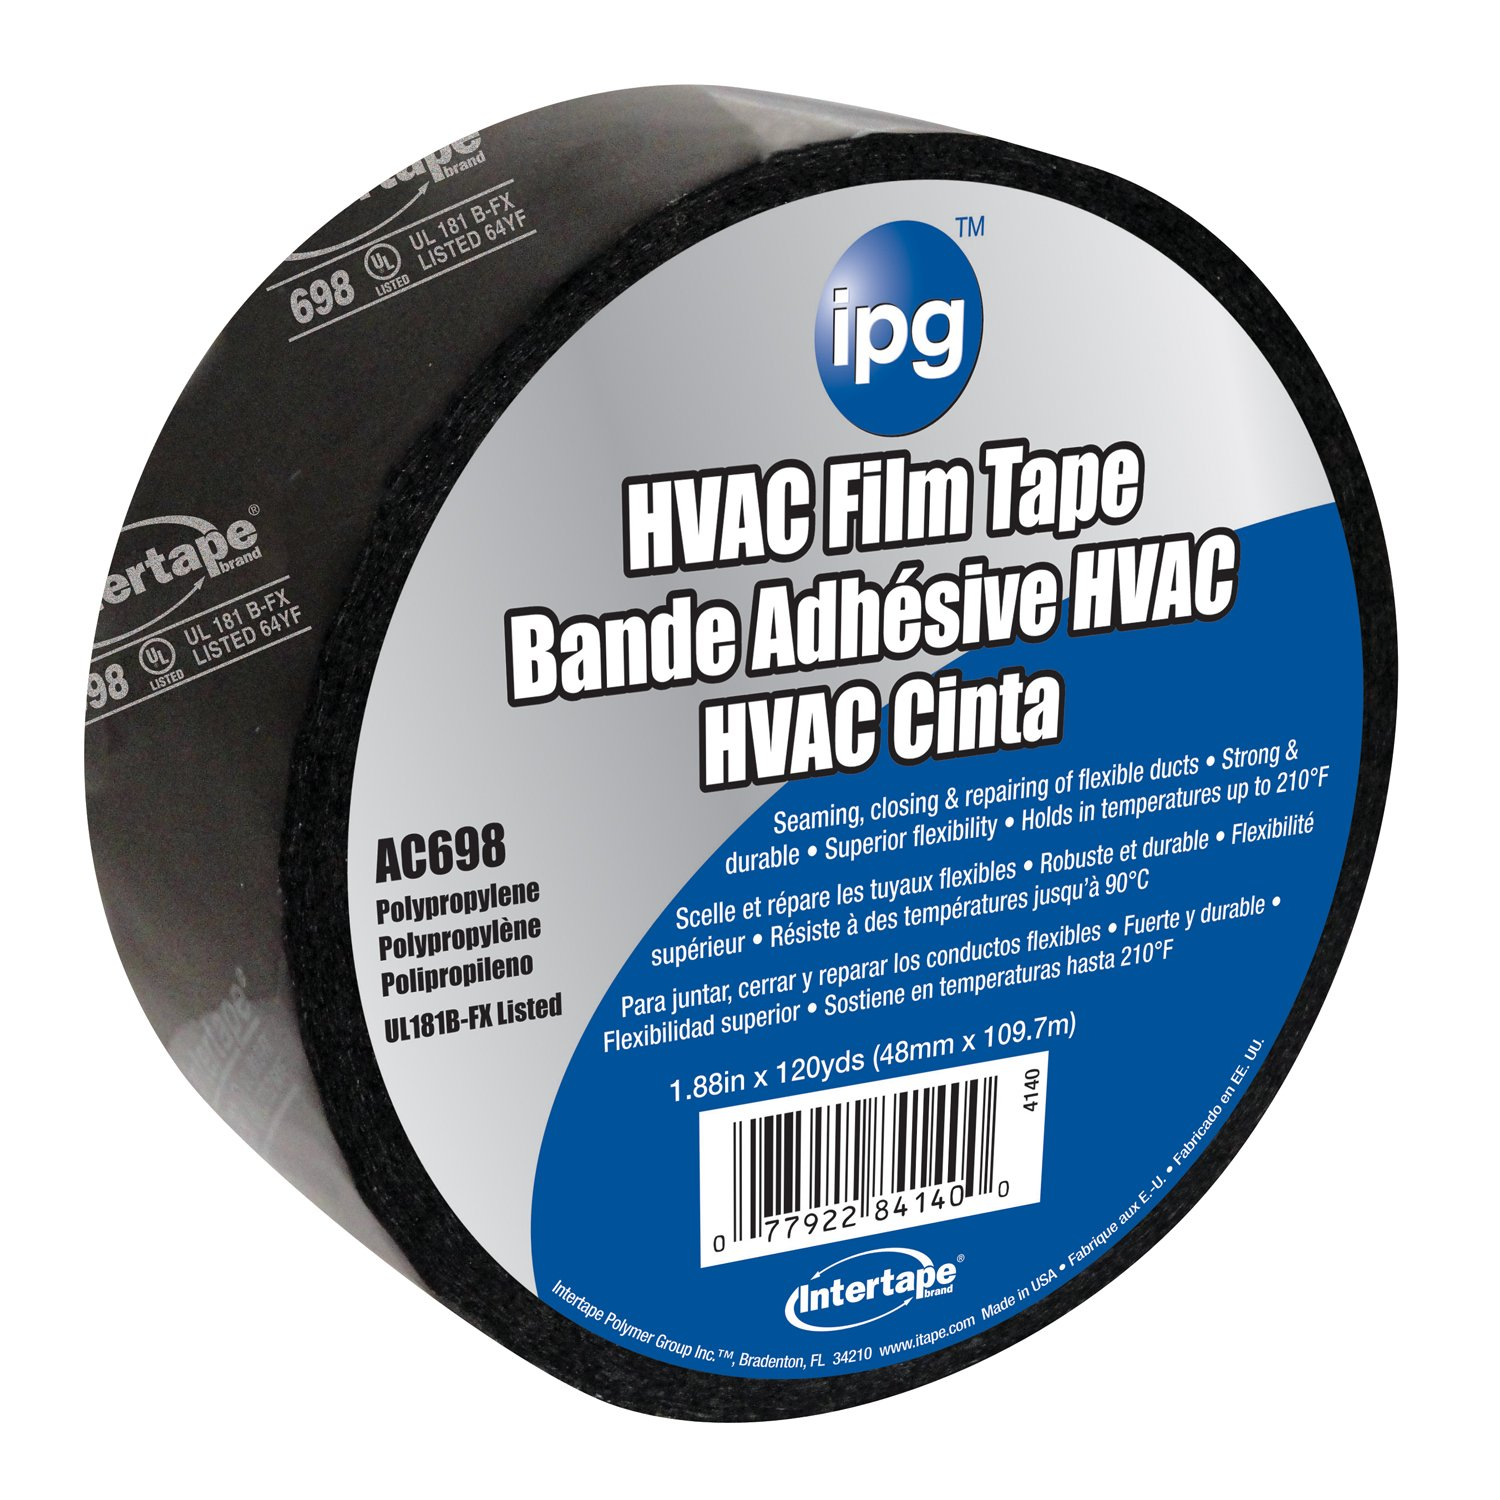 Intertape Polymer Group 4140 1.88-Inch x 120-Yard Acrylic Biaxial-Oriented PolyPropylene HVAC Tape, Black/White